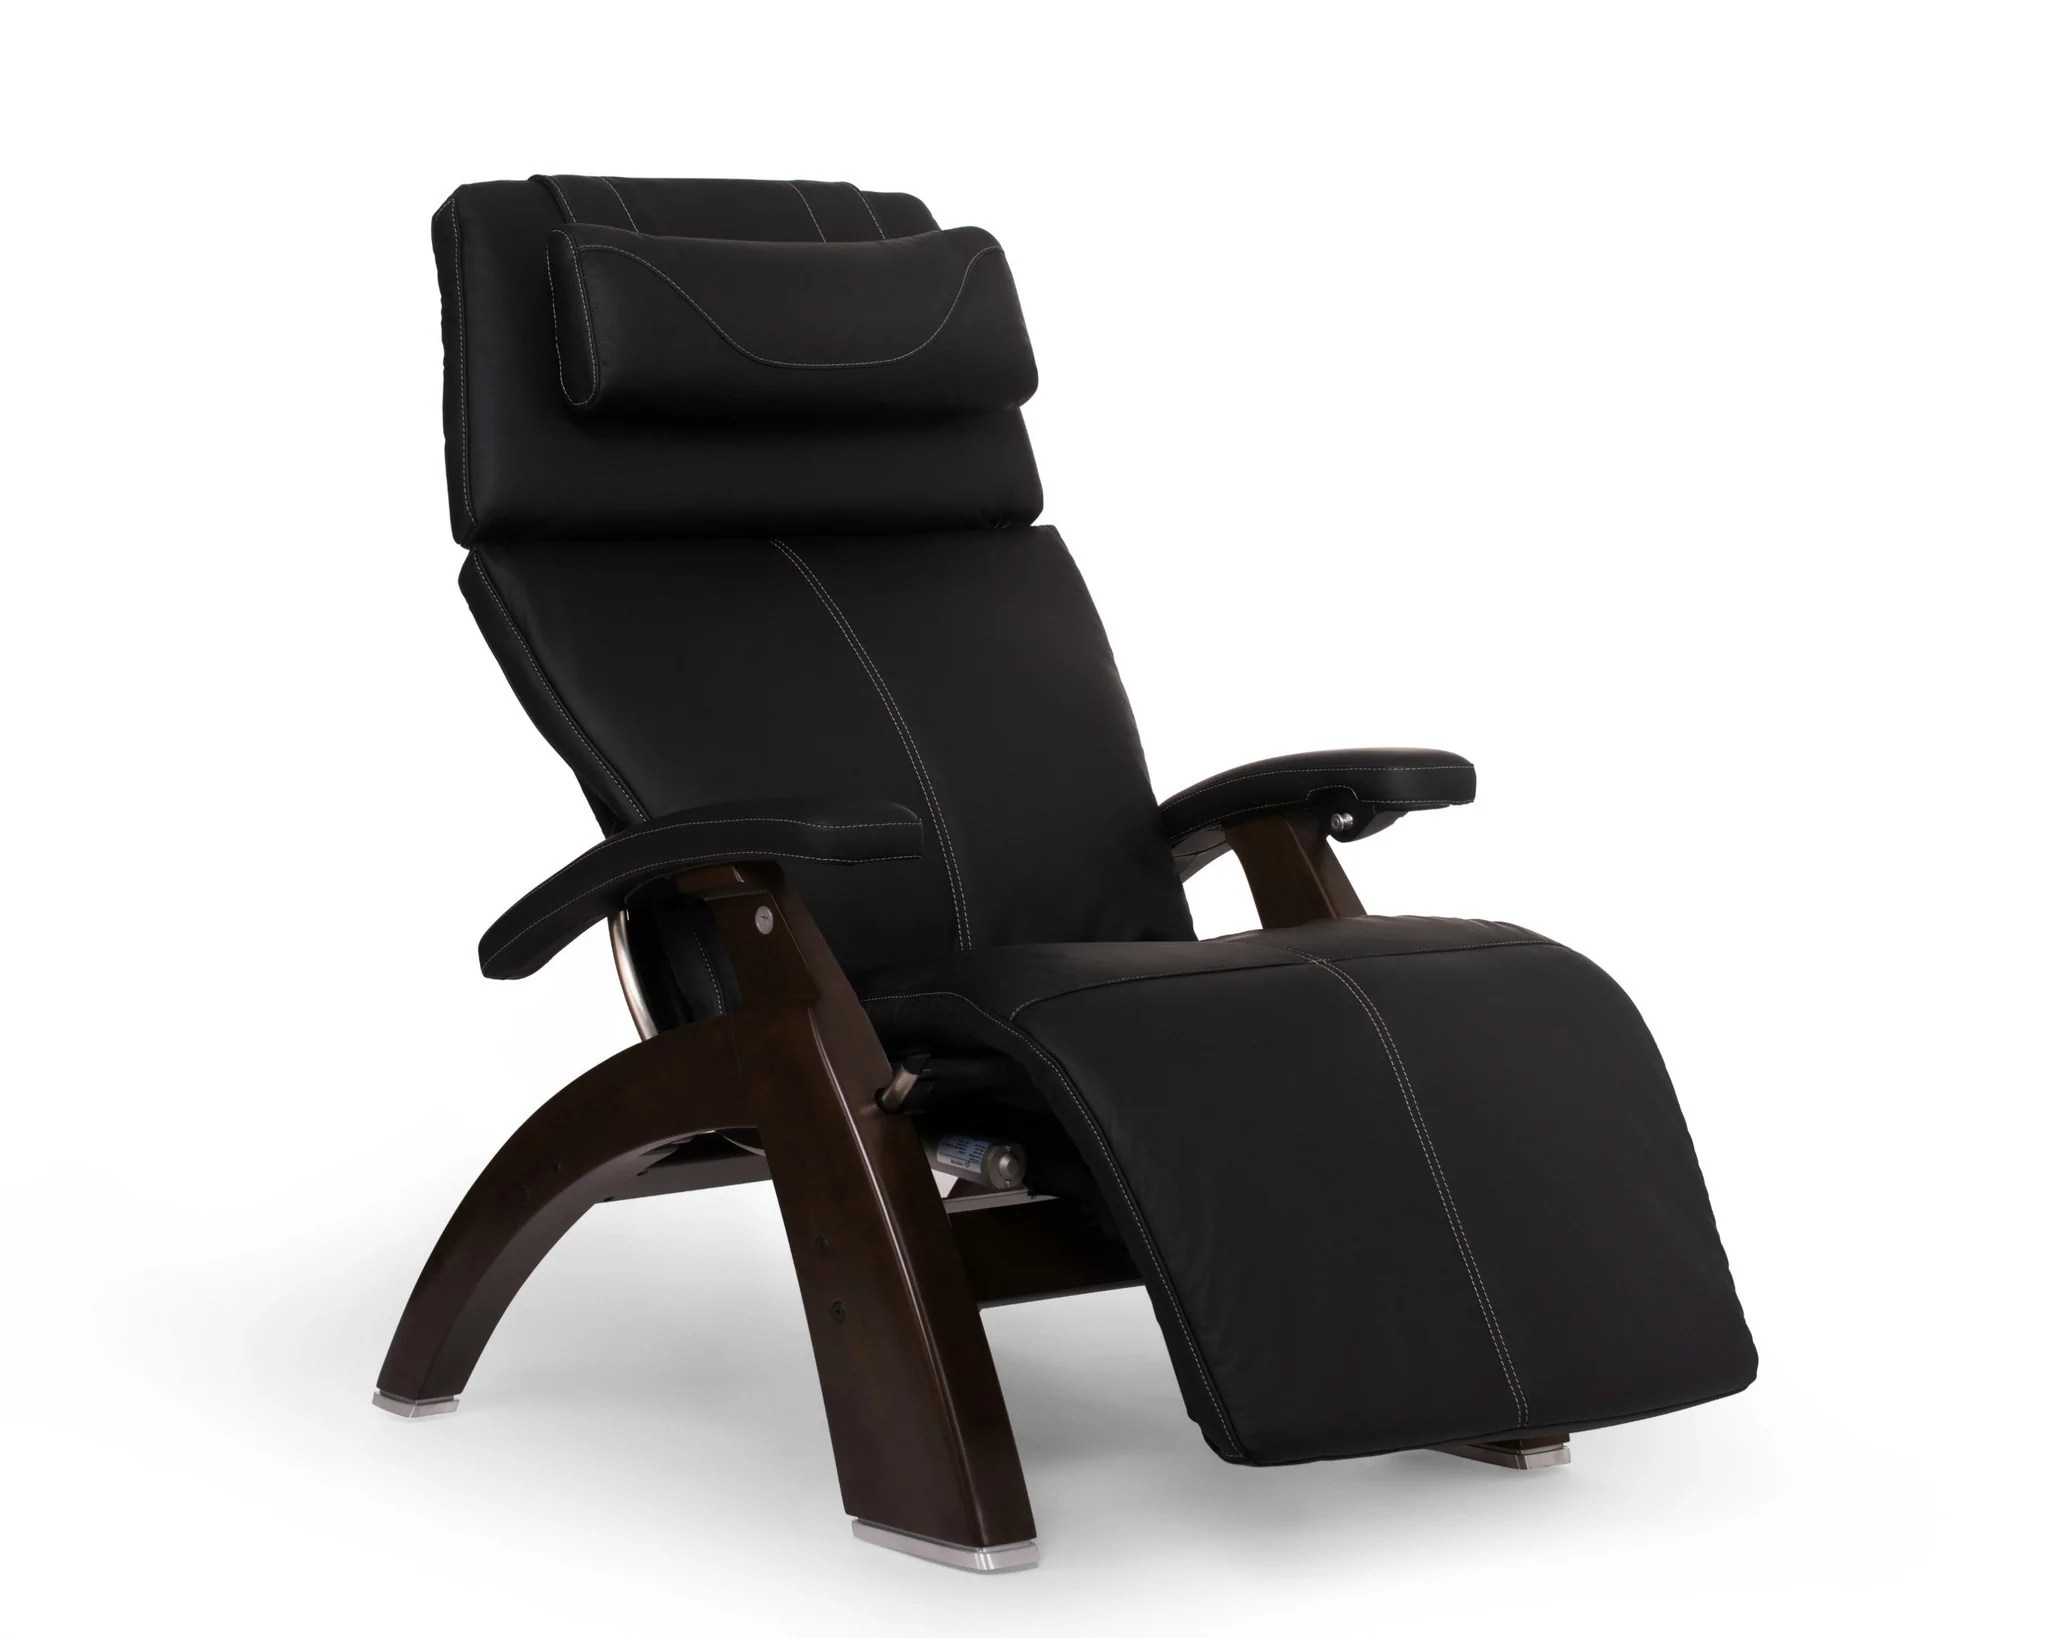 Zero Gravity Office Chair Why Buy Zero Gravity Chairs From Recliners L A Instead Of Amazon